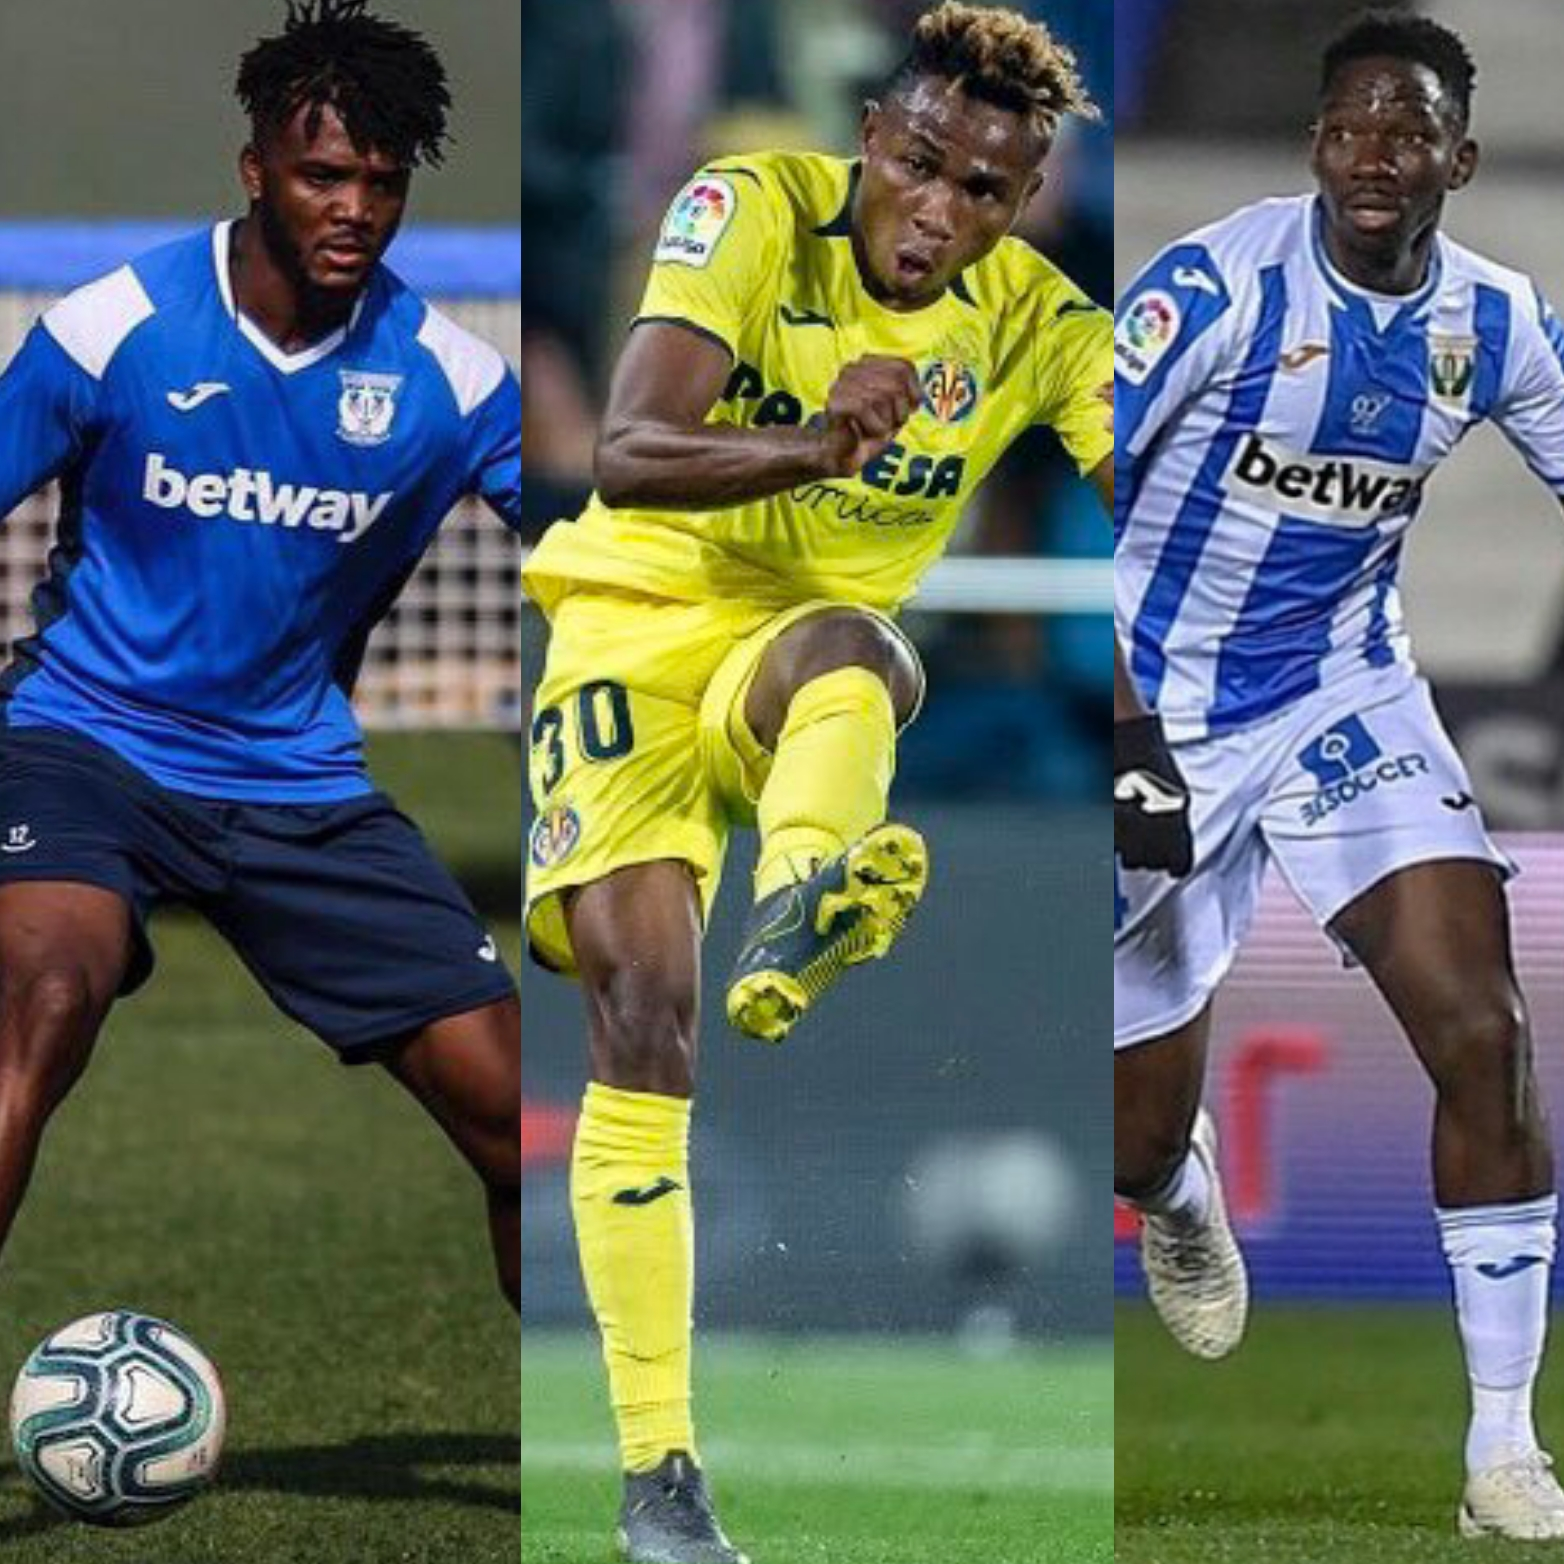 Chukwueze Confronts Omeruo, Awaziem In Leganes – Villarreal Laliga Clash